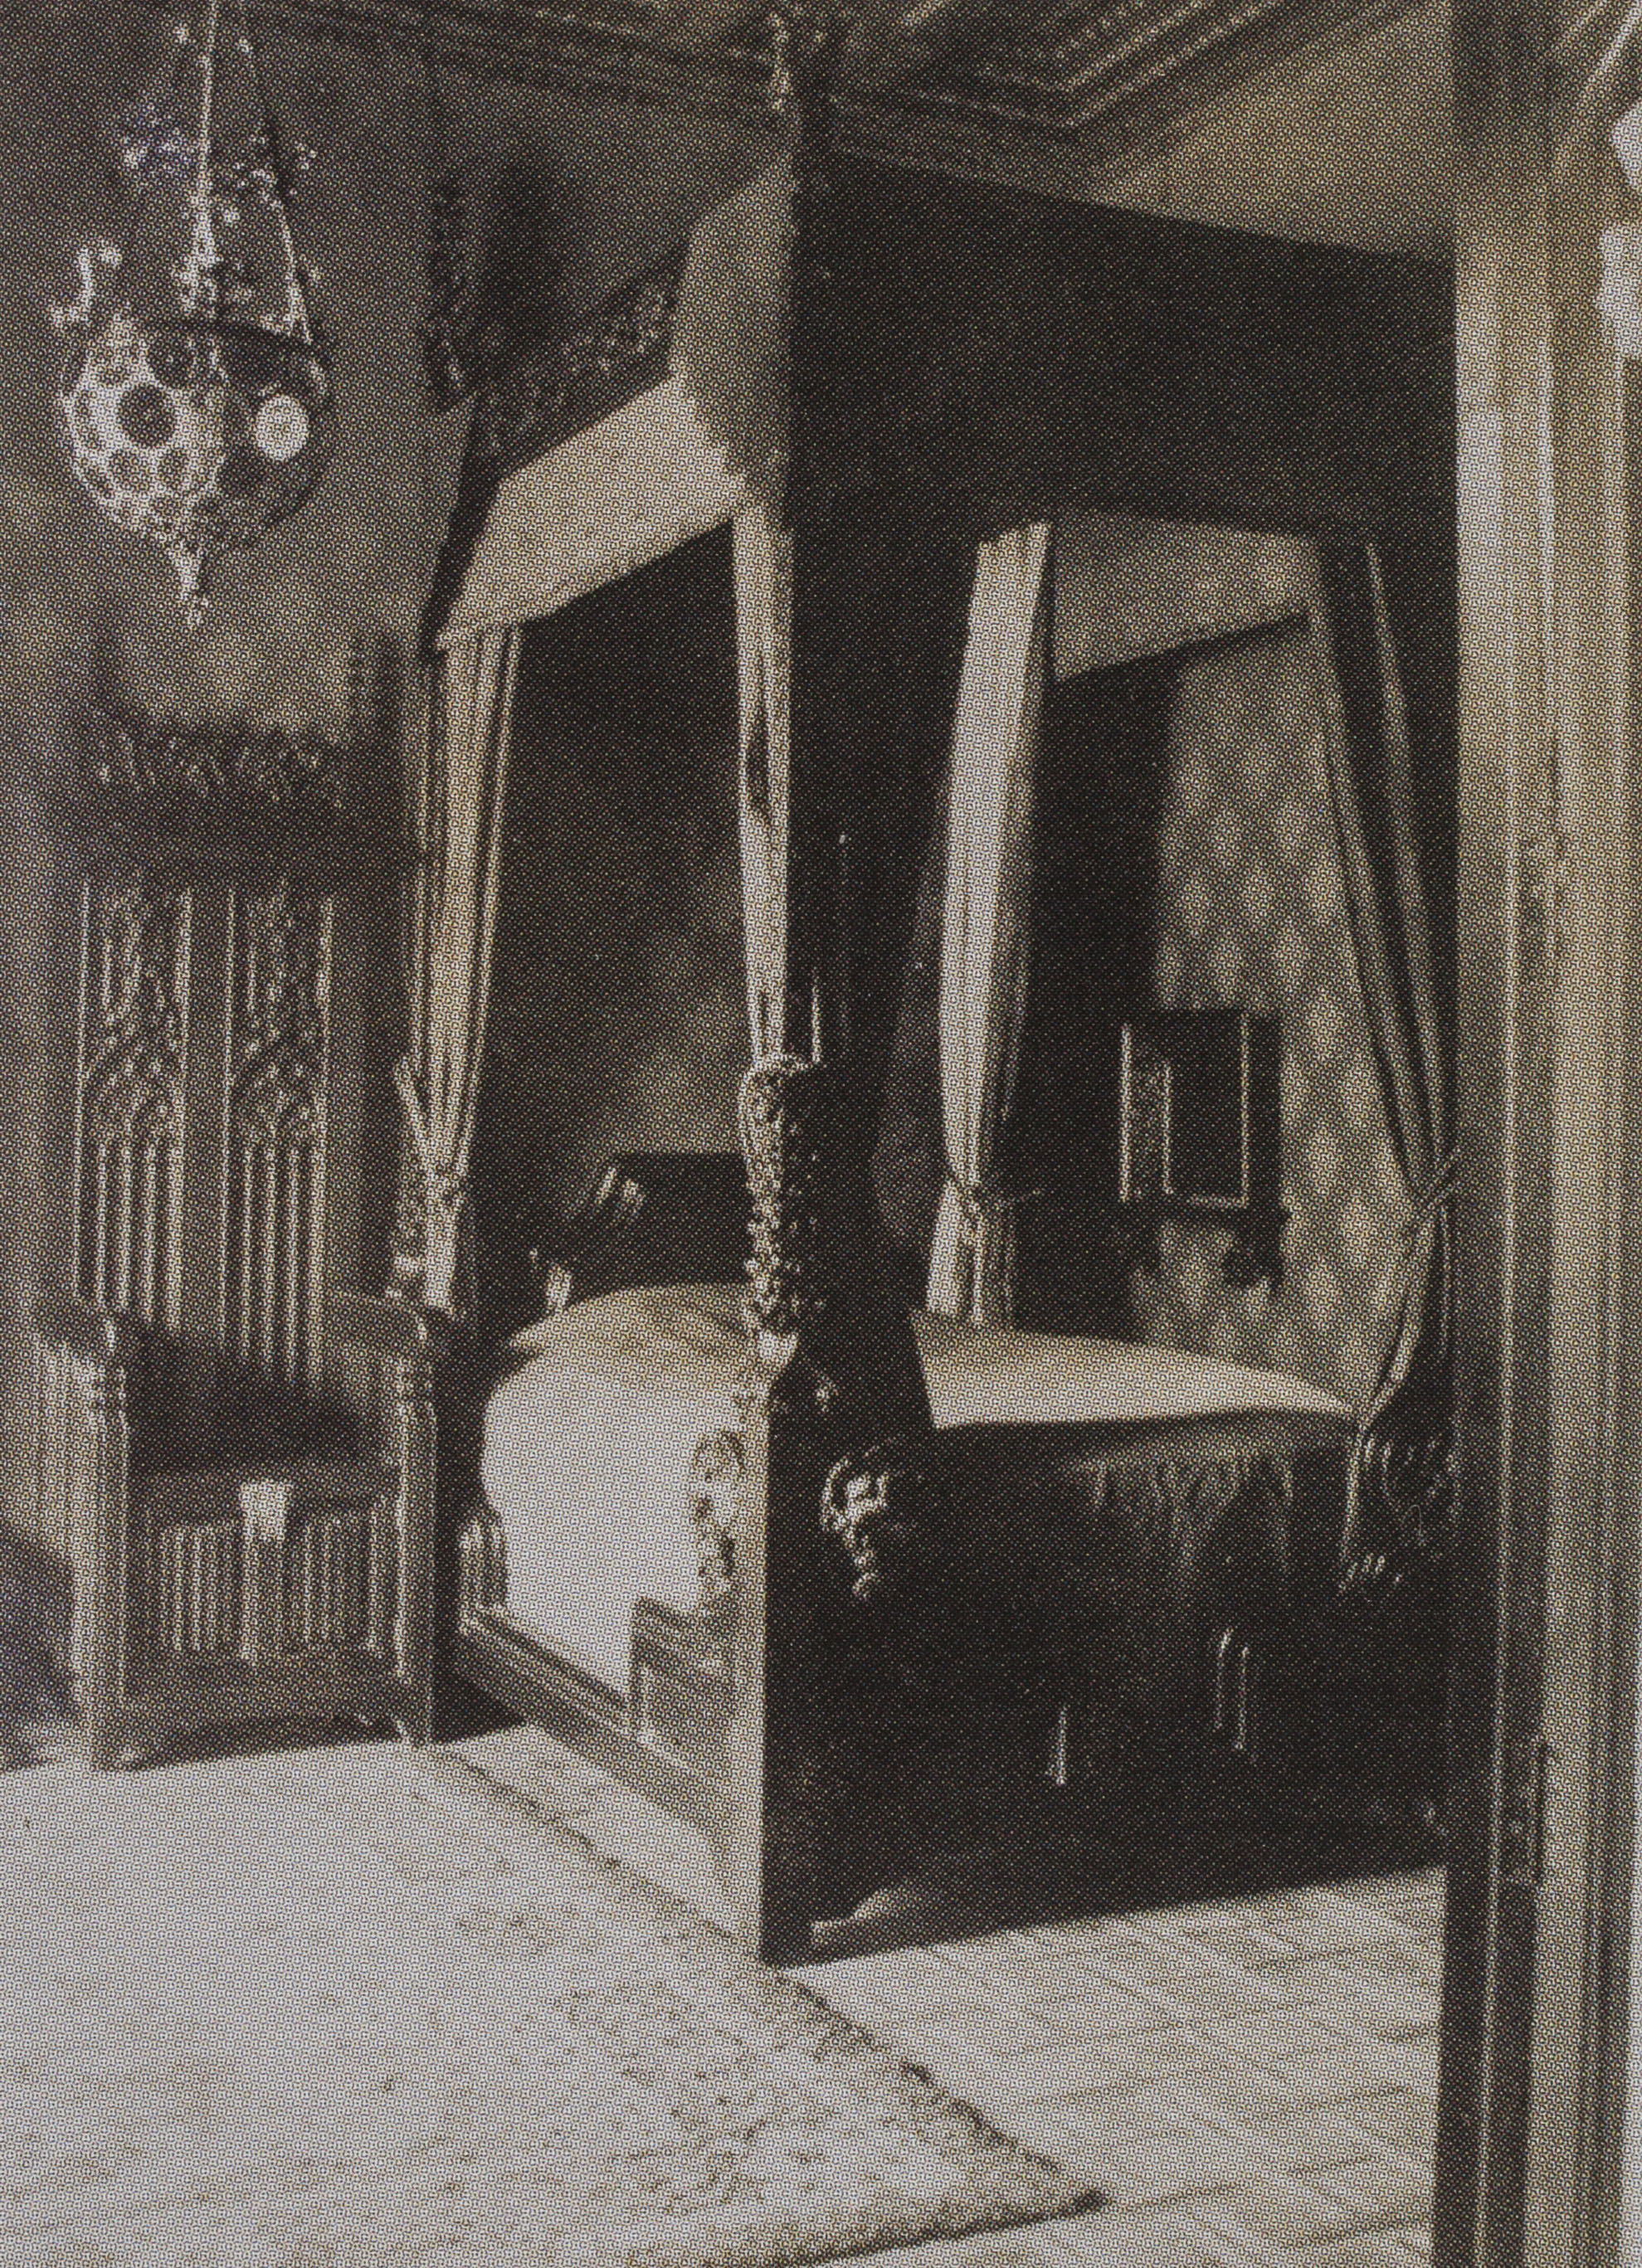 Casa Amatller: music room, bedroom and dining room. 1901